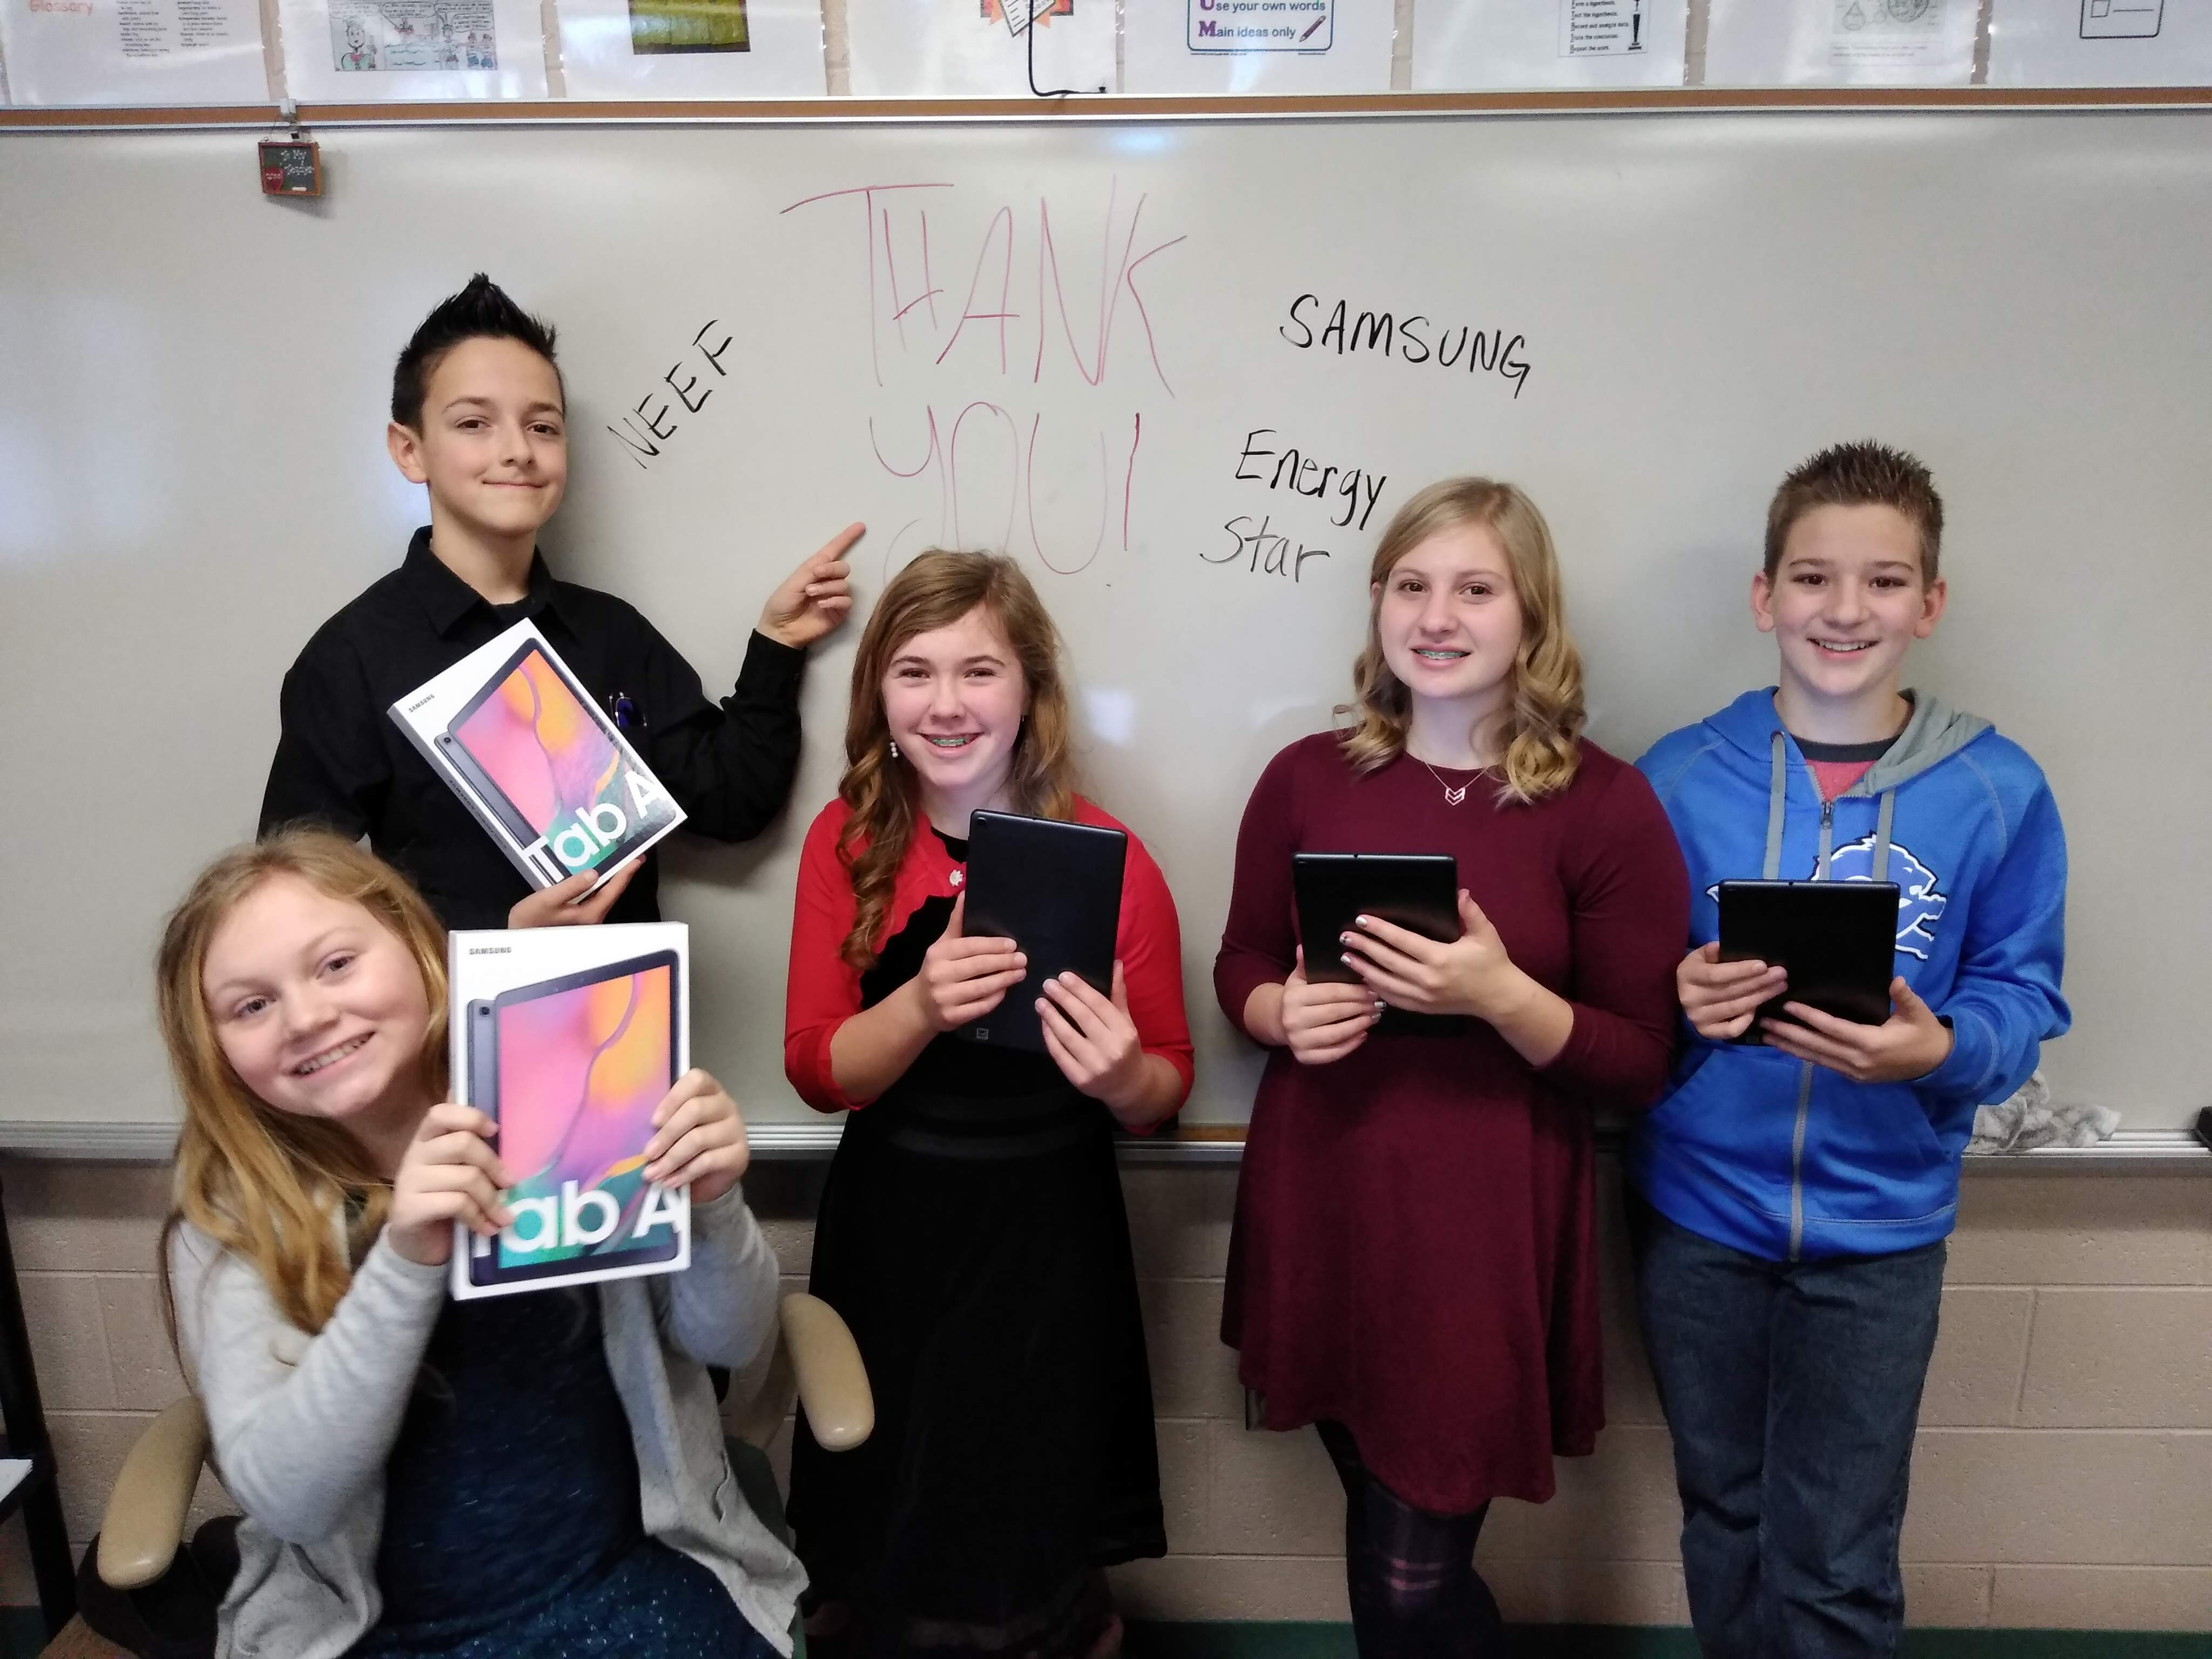 Earth Science students in Ishpeming, Michigan, were one of 20 classrooms to win Samsung technology for their successful completion of the Climate Superstars Challenge in November 2019.